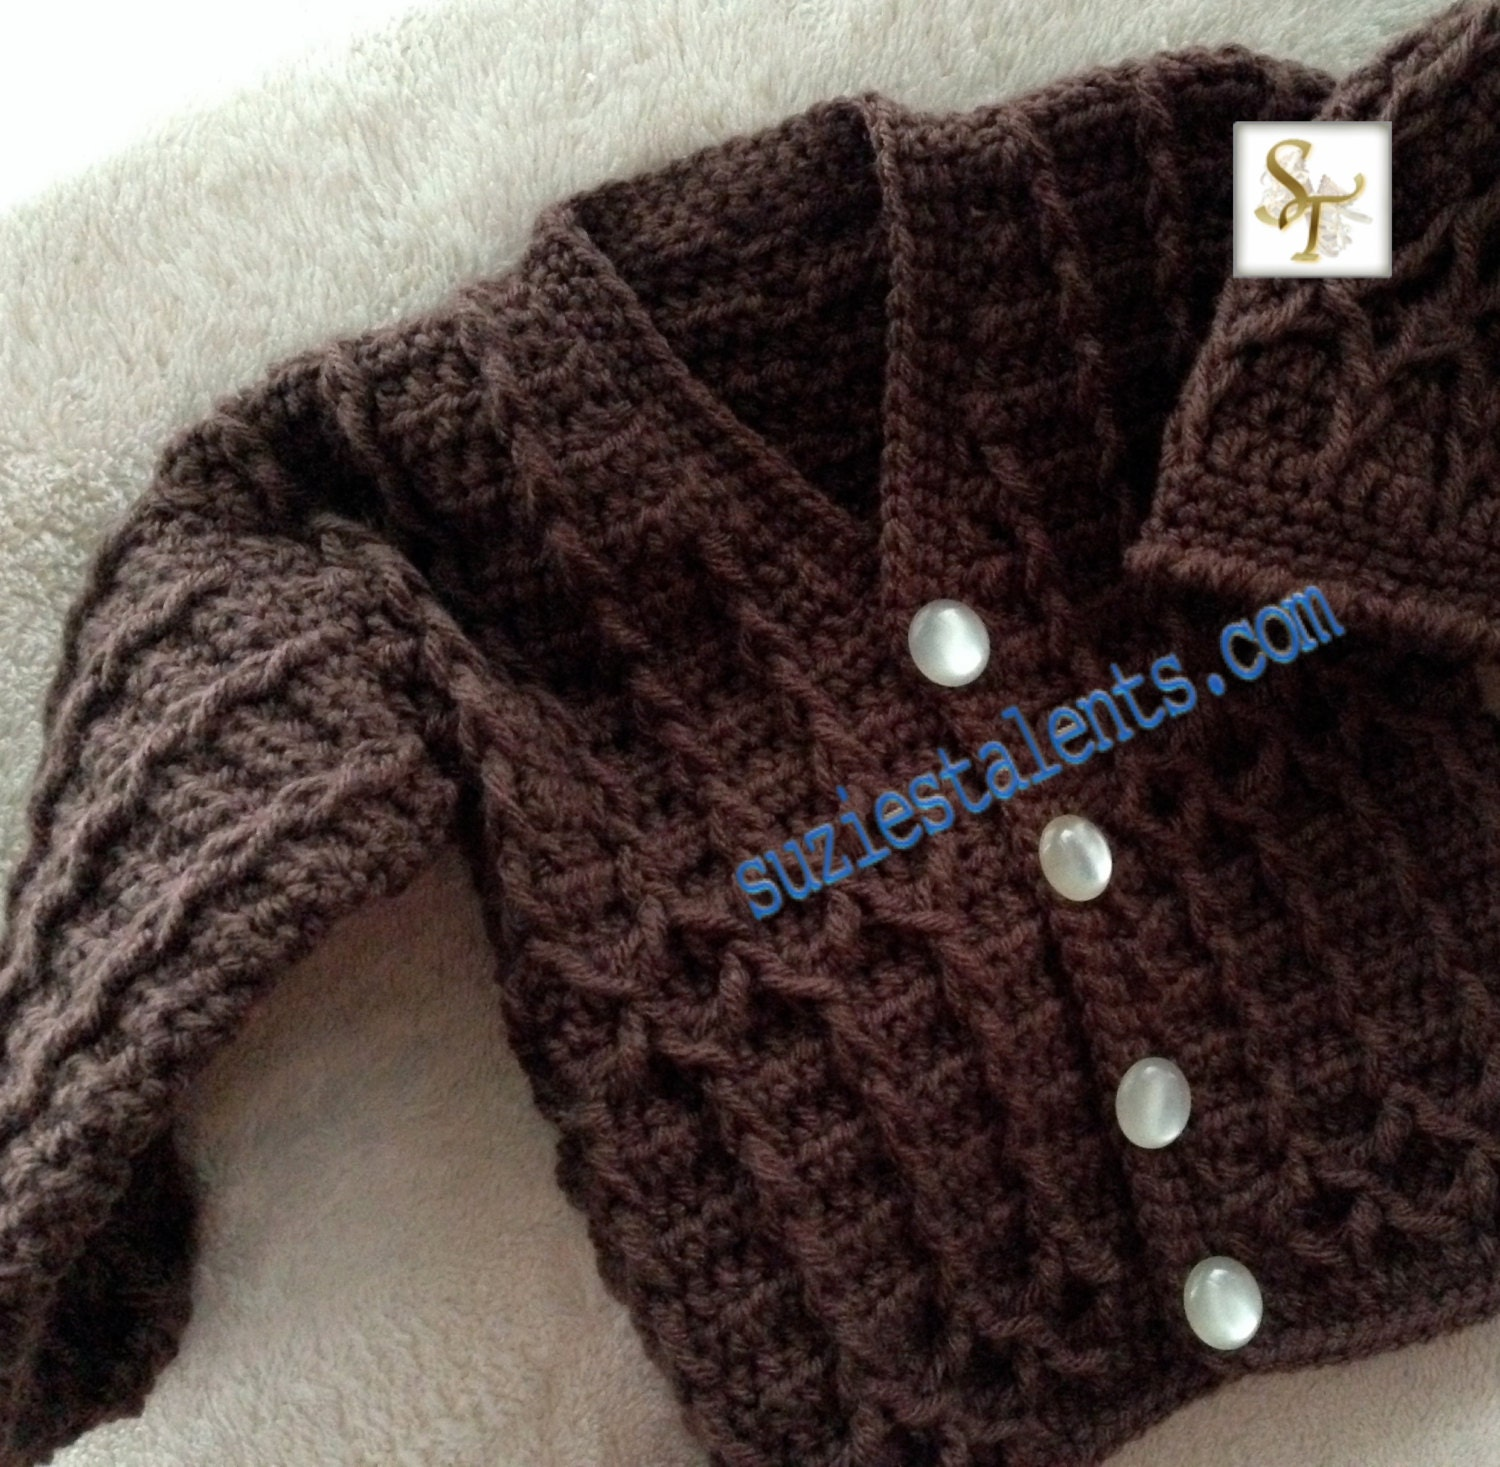 Sale pattern pt051 baby warm jacket crochet baby jacket zoom bankloansurffo Image collections